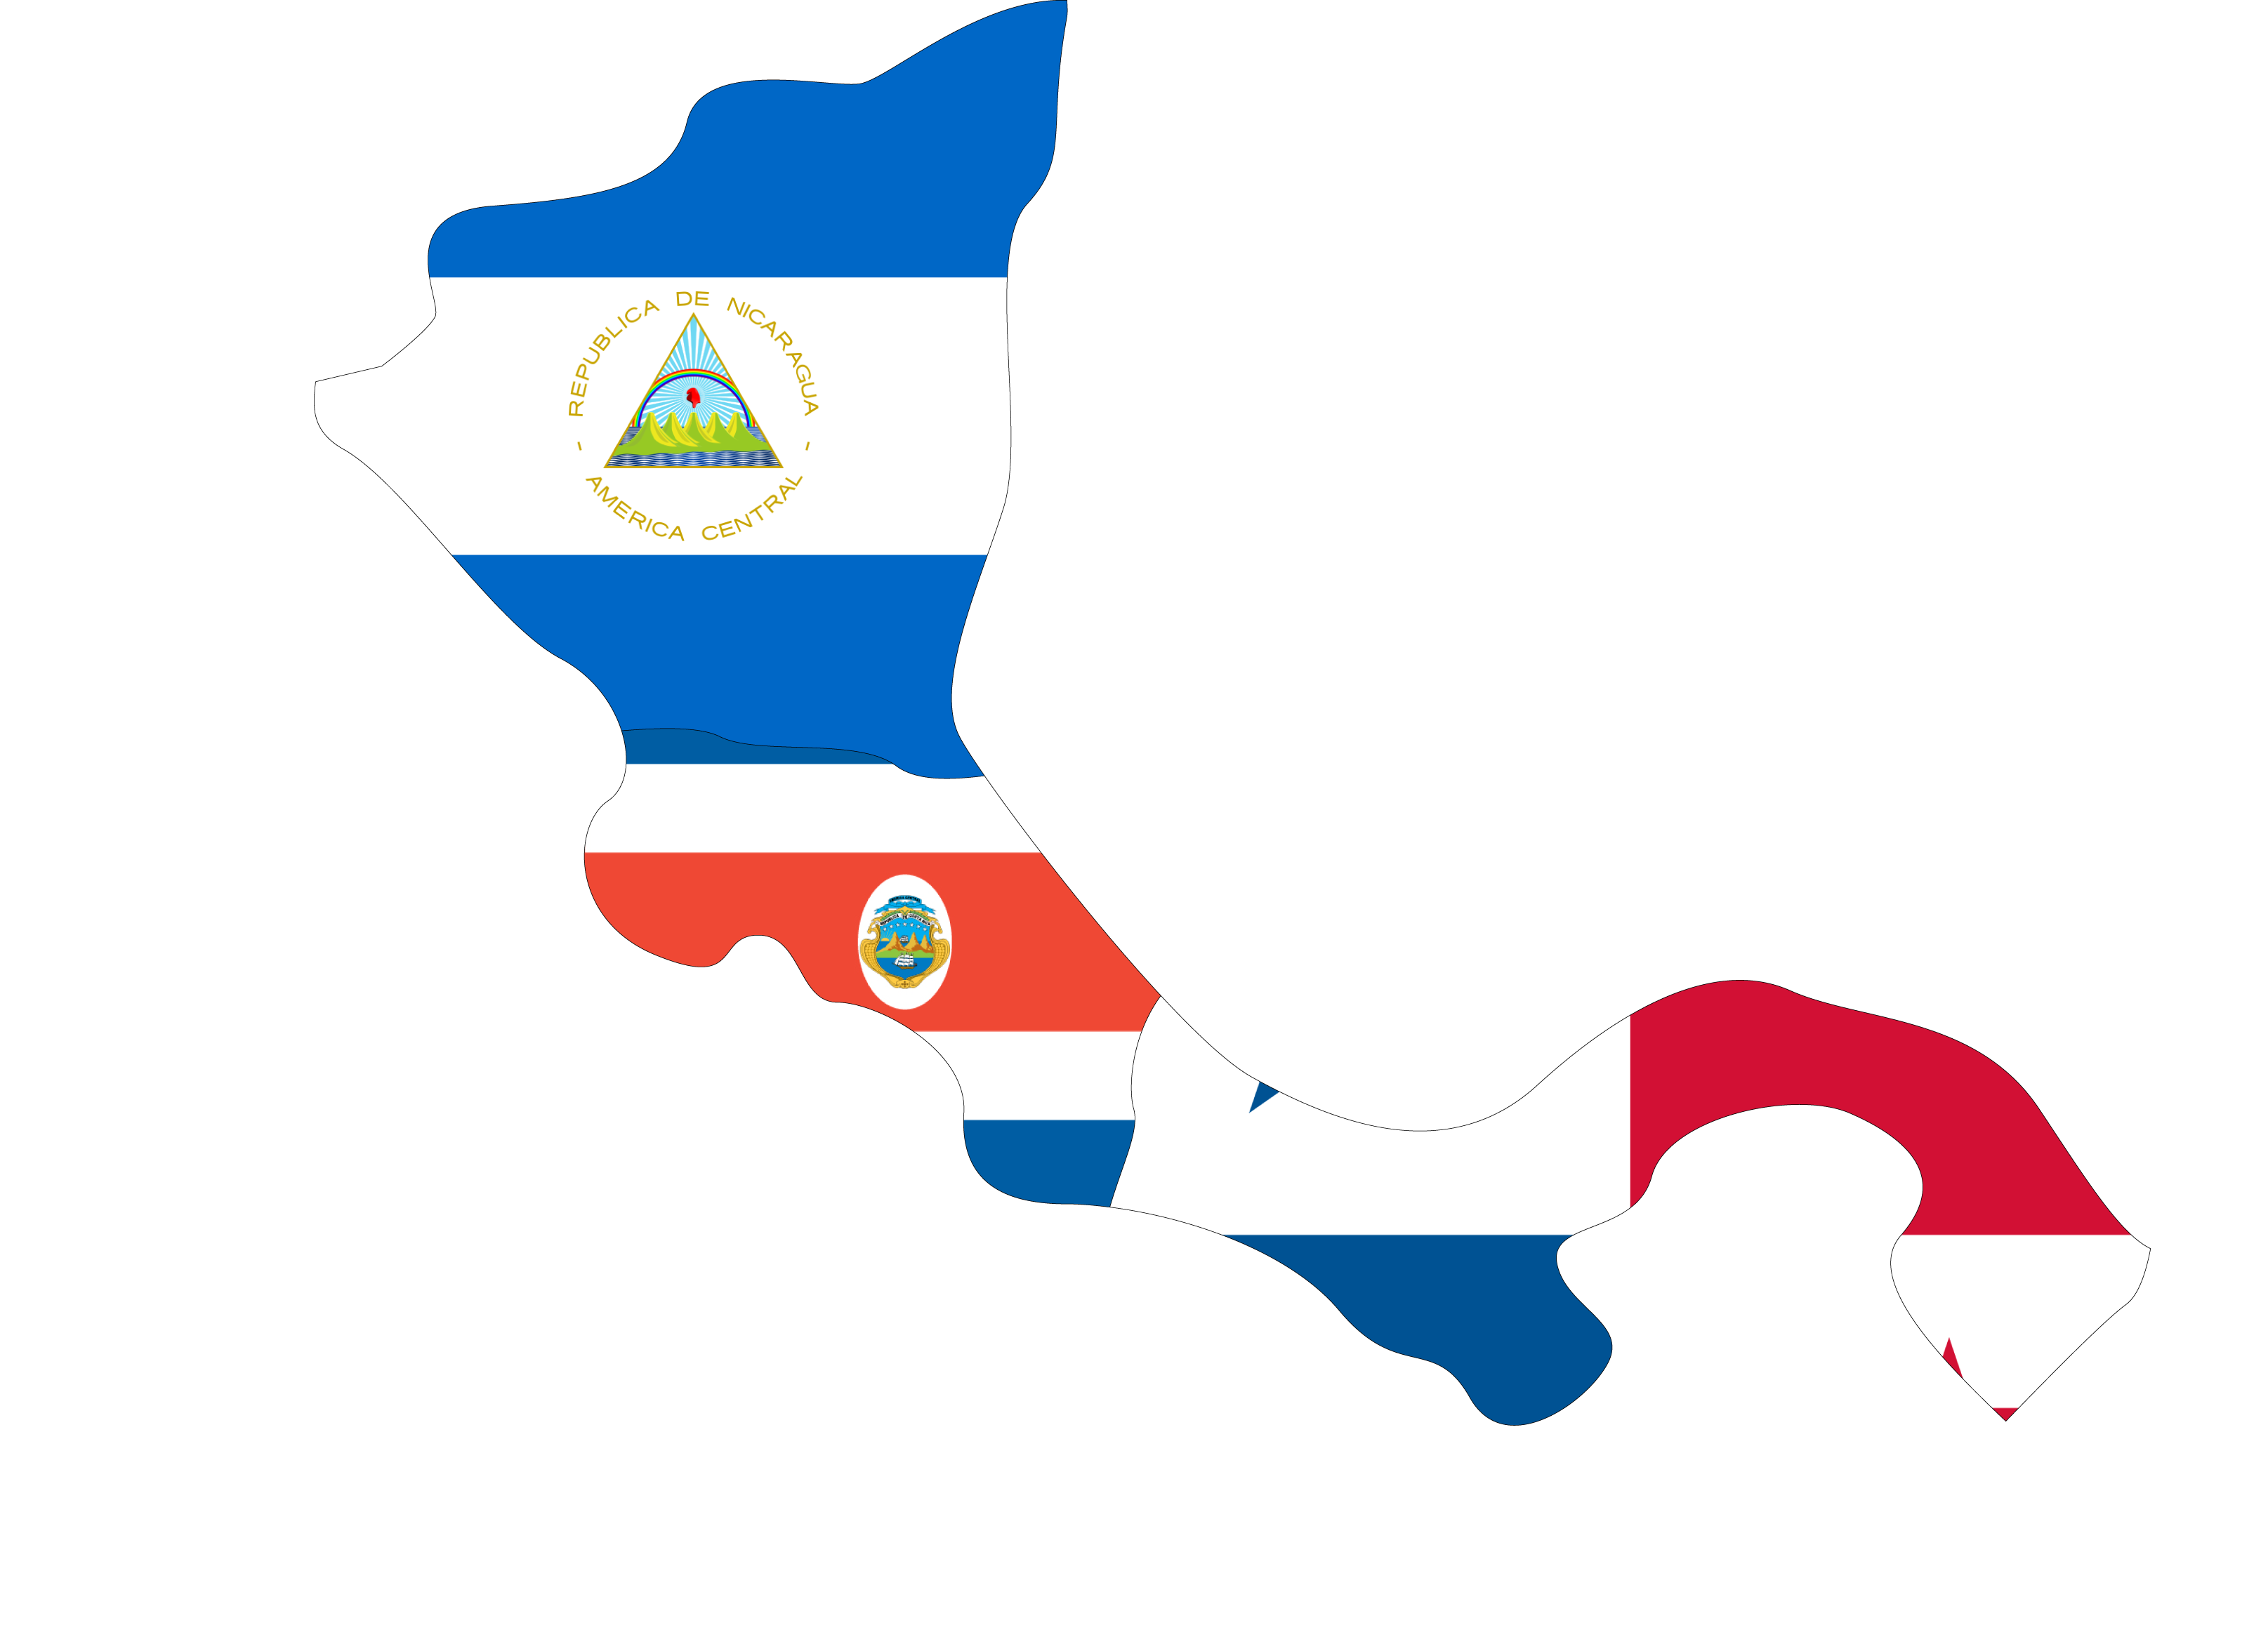 Map of Nicaragua, Costa Rica, and Panama.